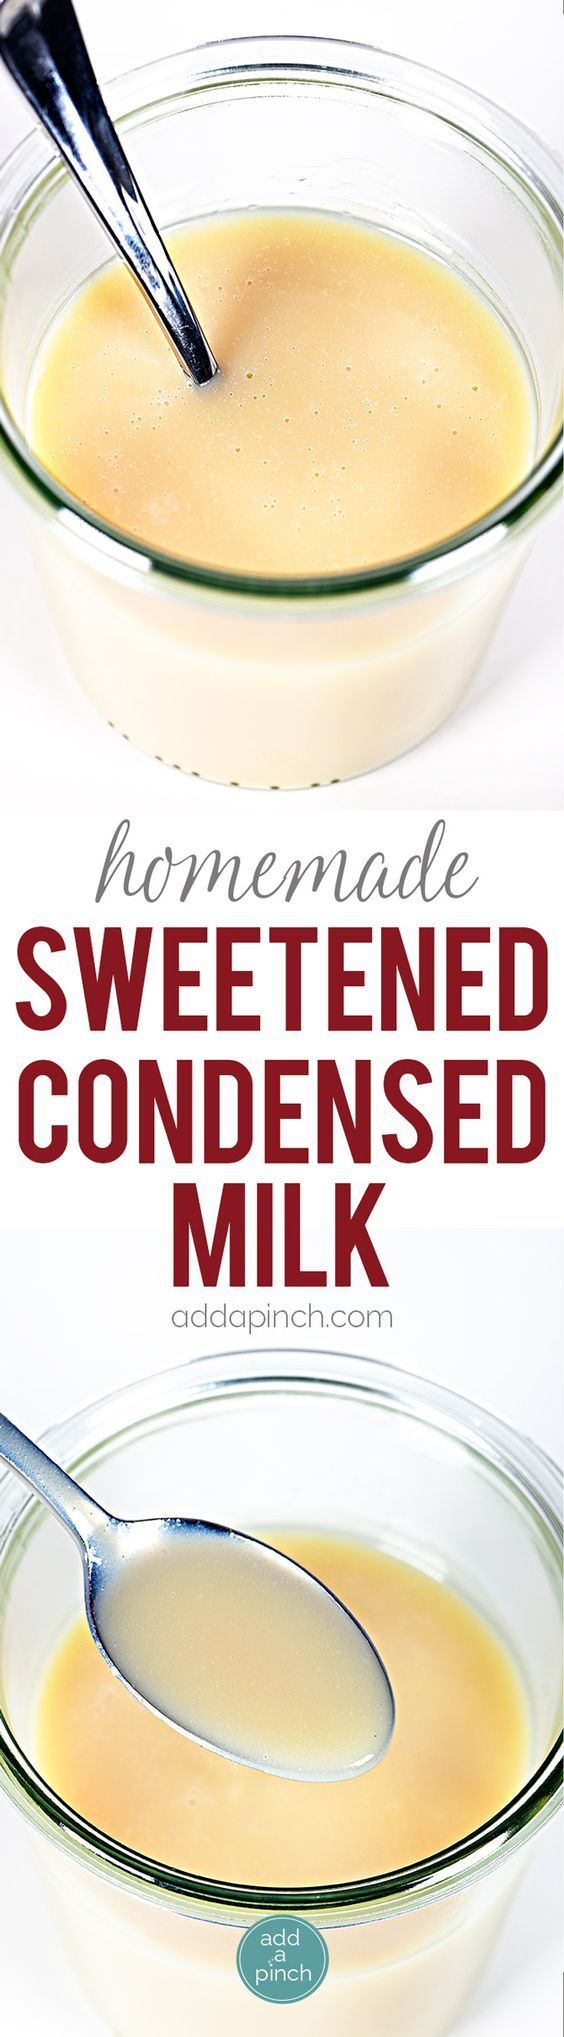 Homemade Sweetened Condensed Milk | Recipe | Homemade ...